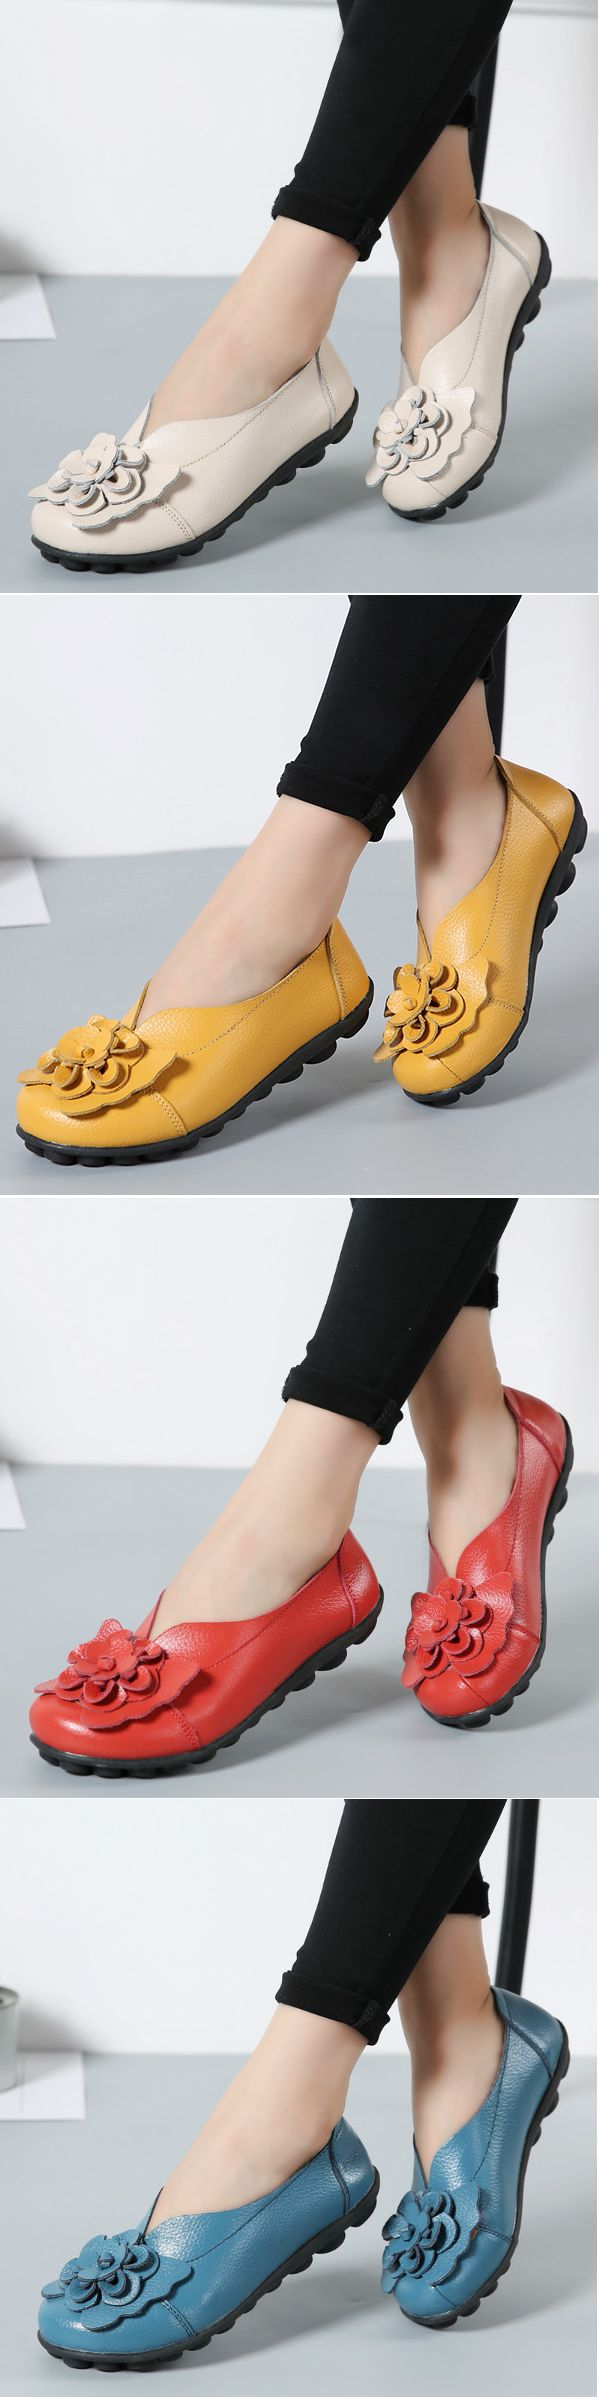 46% OFF! US$21.38 Large Size Flower Leather Lazy Flats. SHOP NOW!